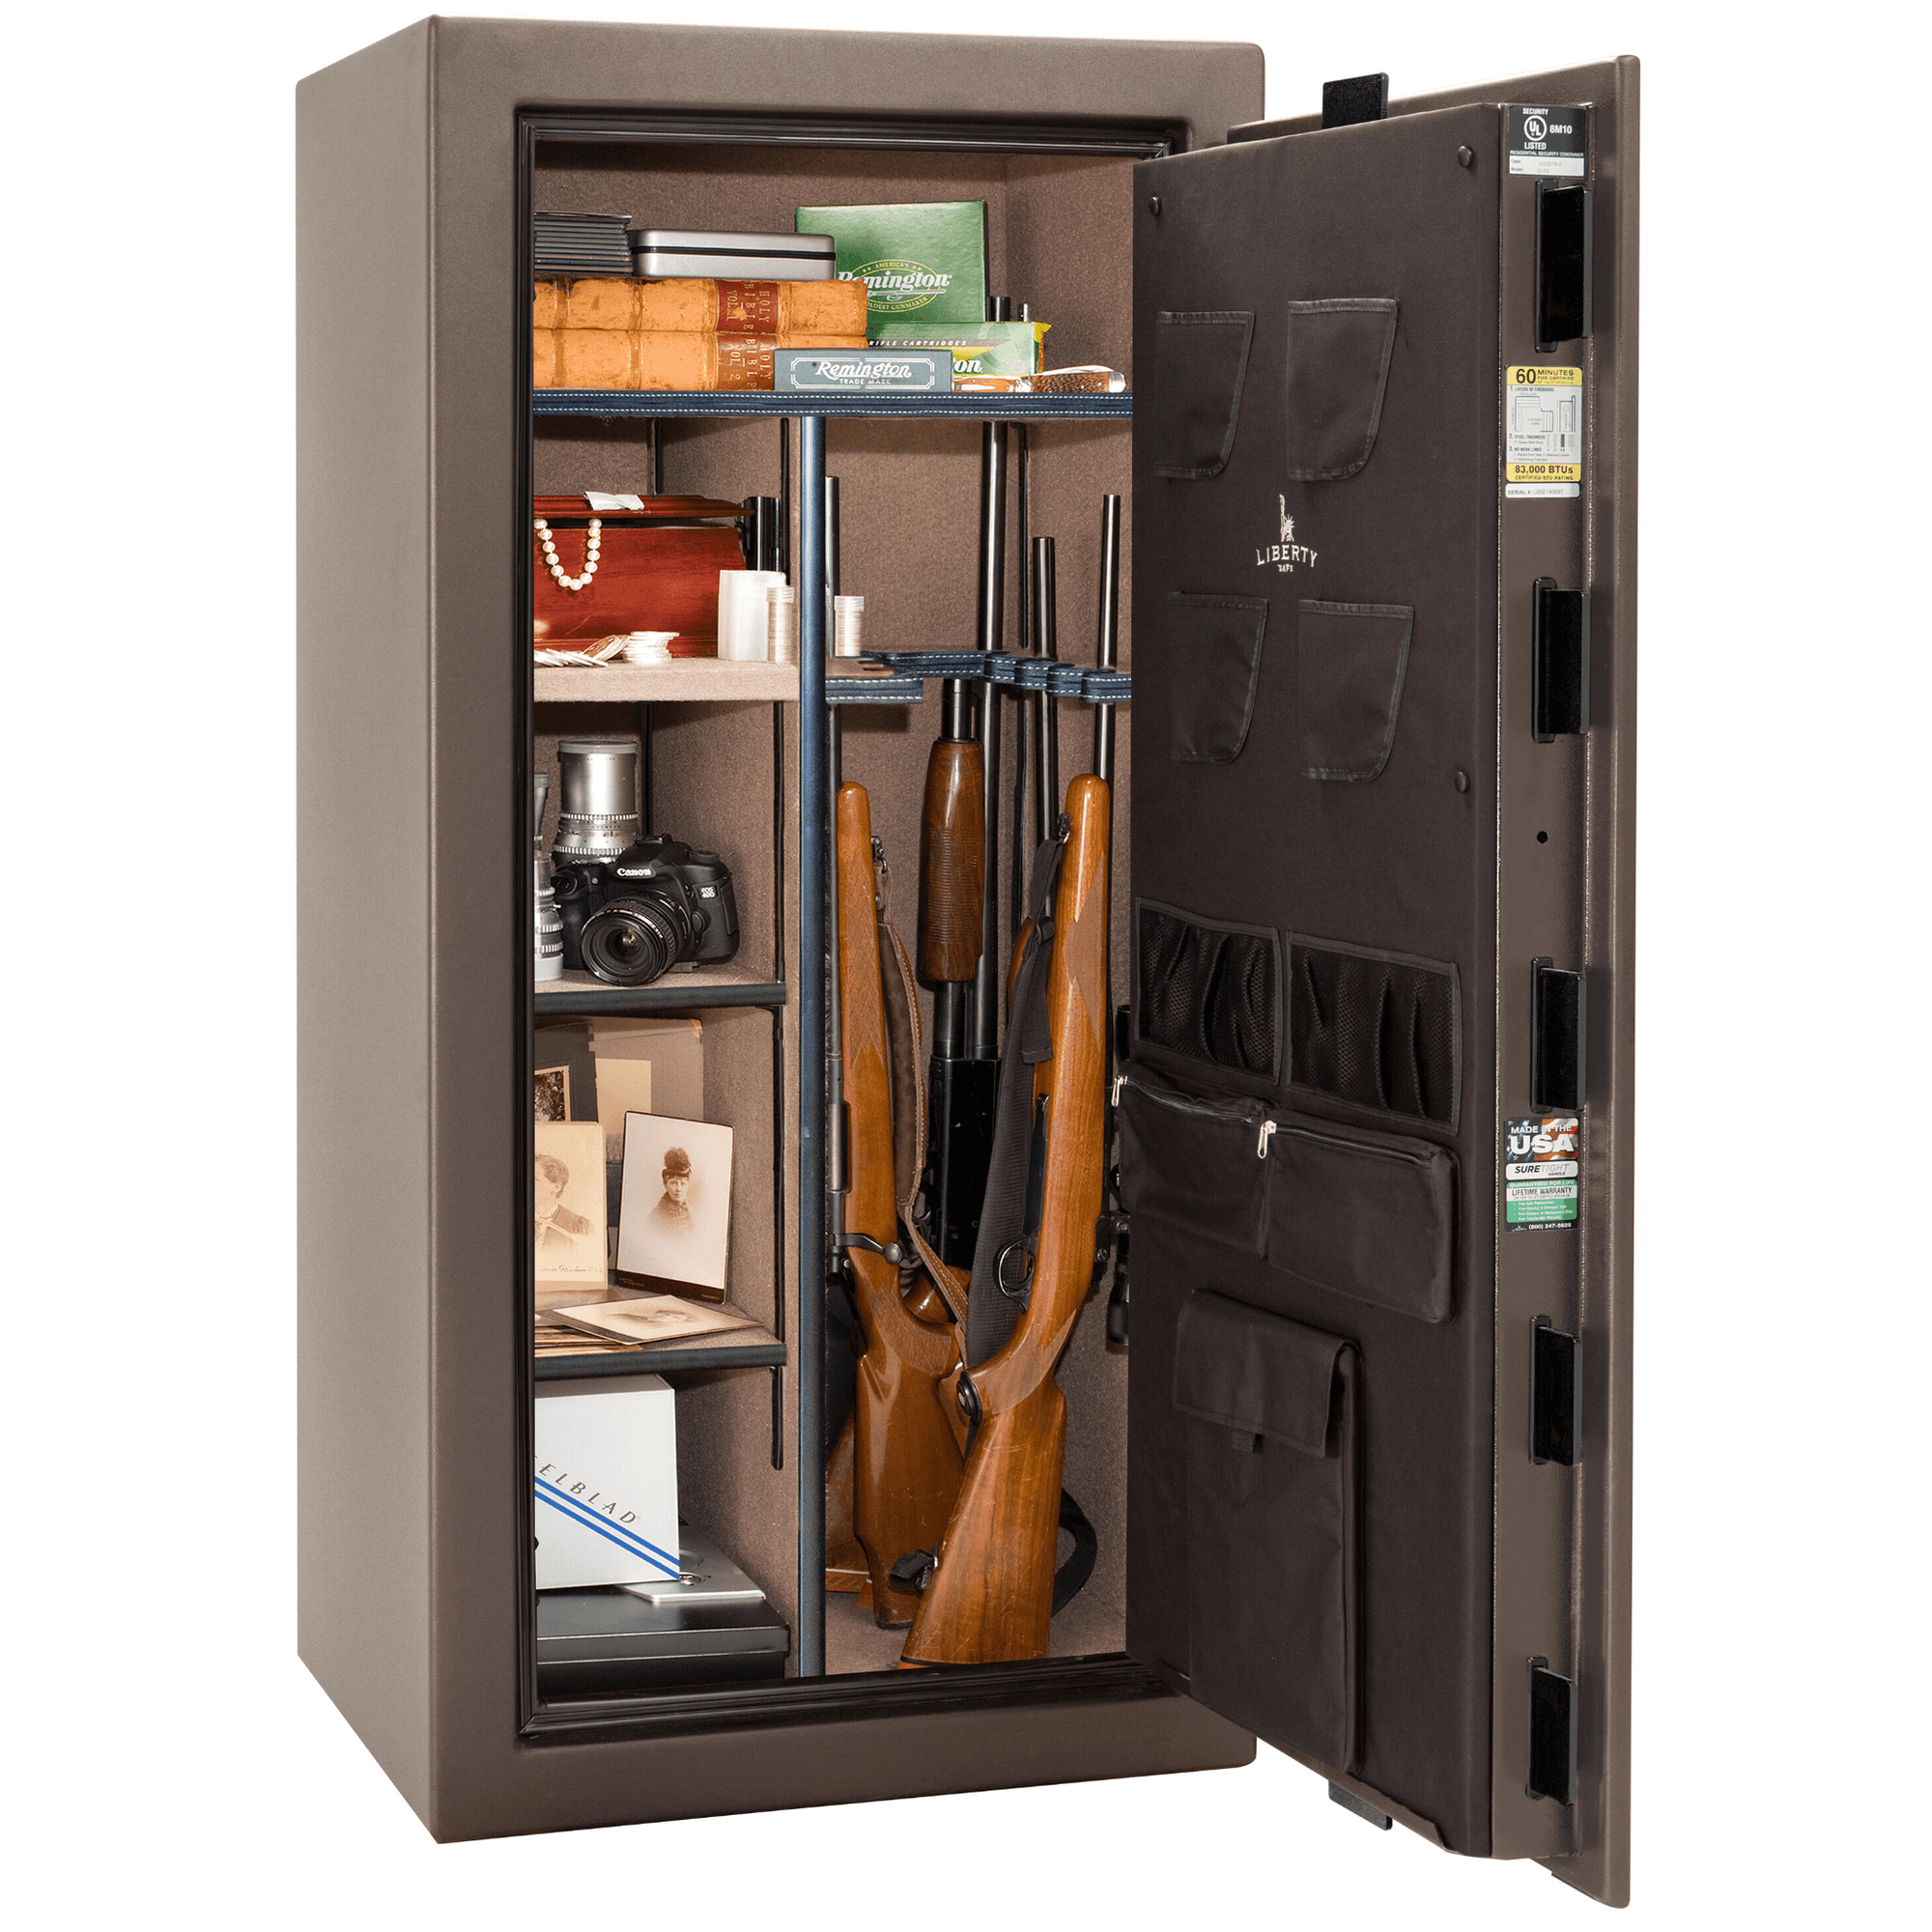 "Colonial | 23 | Level 3 Security | 60 Minute Fire Protection | Bronze | Black Electronic Lock | 60.5""(H) x 30""(W) x 25""(D)"